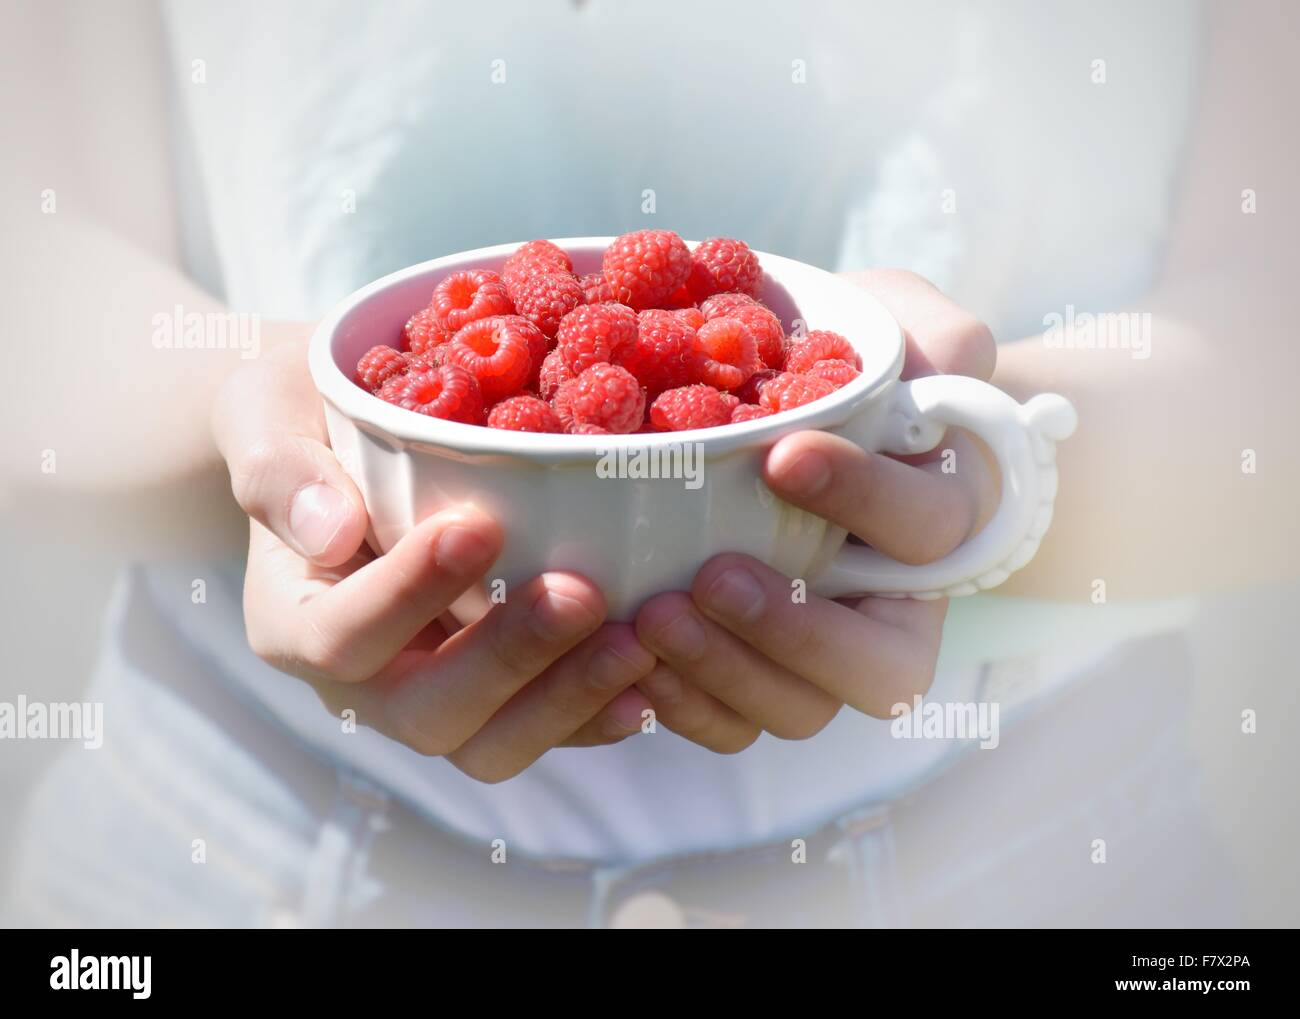 Close-up of girl holding raspberries in a cup - Stock Image